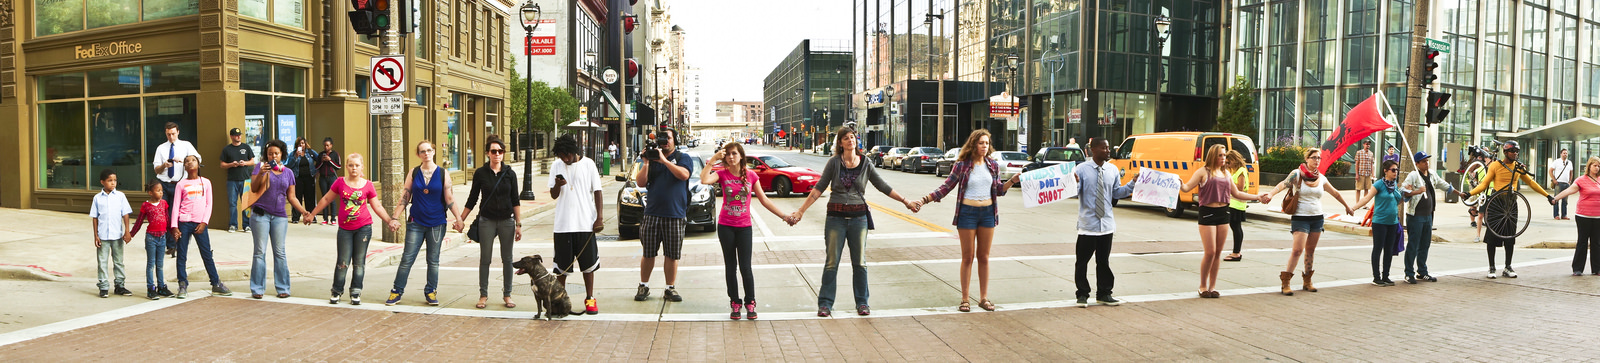 a line of people, of all ages, facing the camera and holding hands, across the intersection of an empty city street